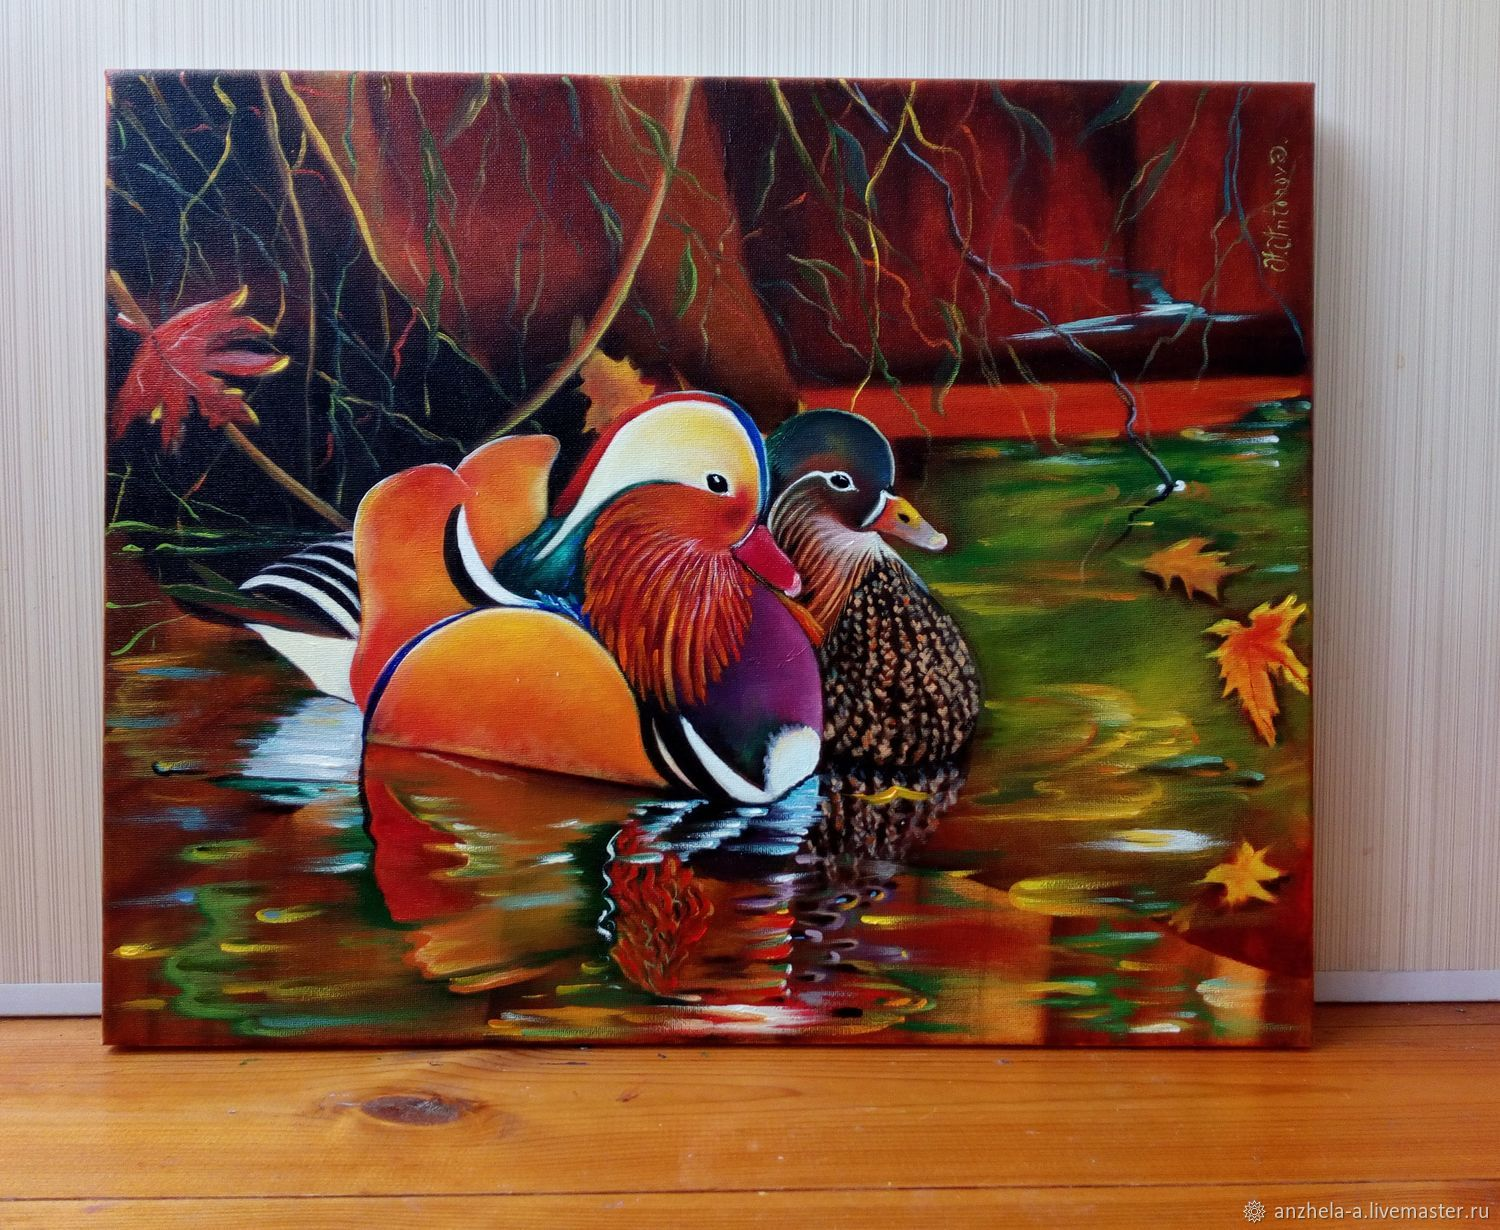 'Mandarin duck oil on canvas', Pictures, Moscow,  Фото №1